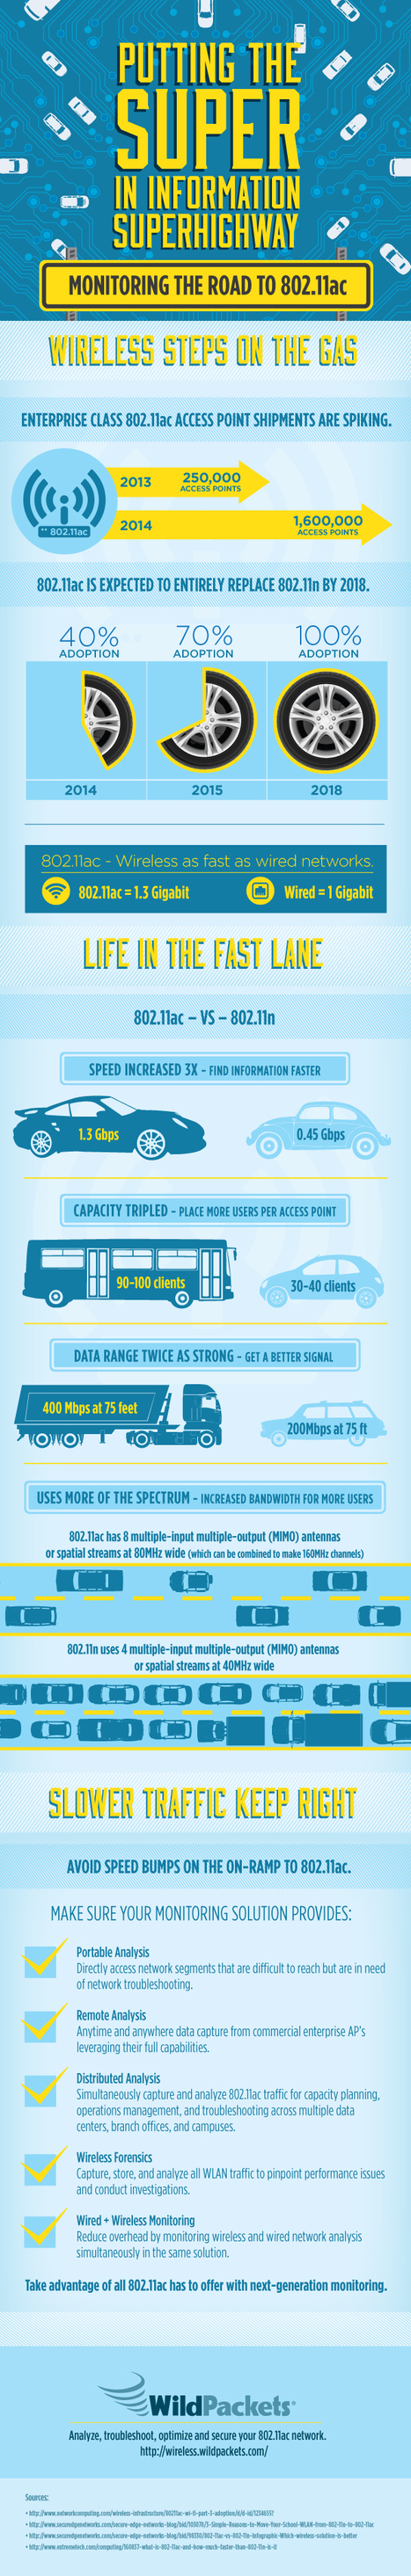 INFOGRAPHIC: Putting The SUPER In Information Superhighway | Cloud Central | Scoop.it